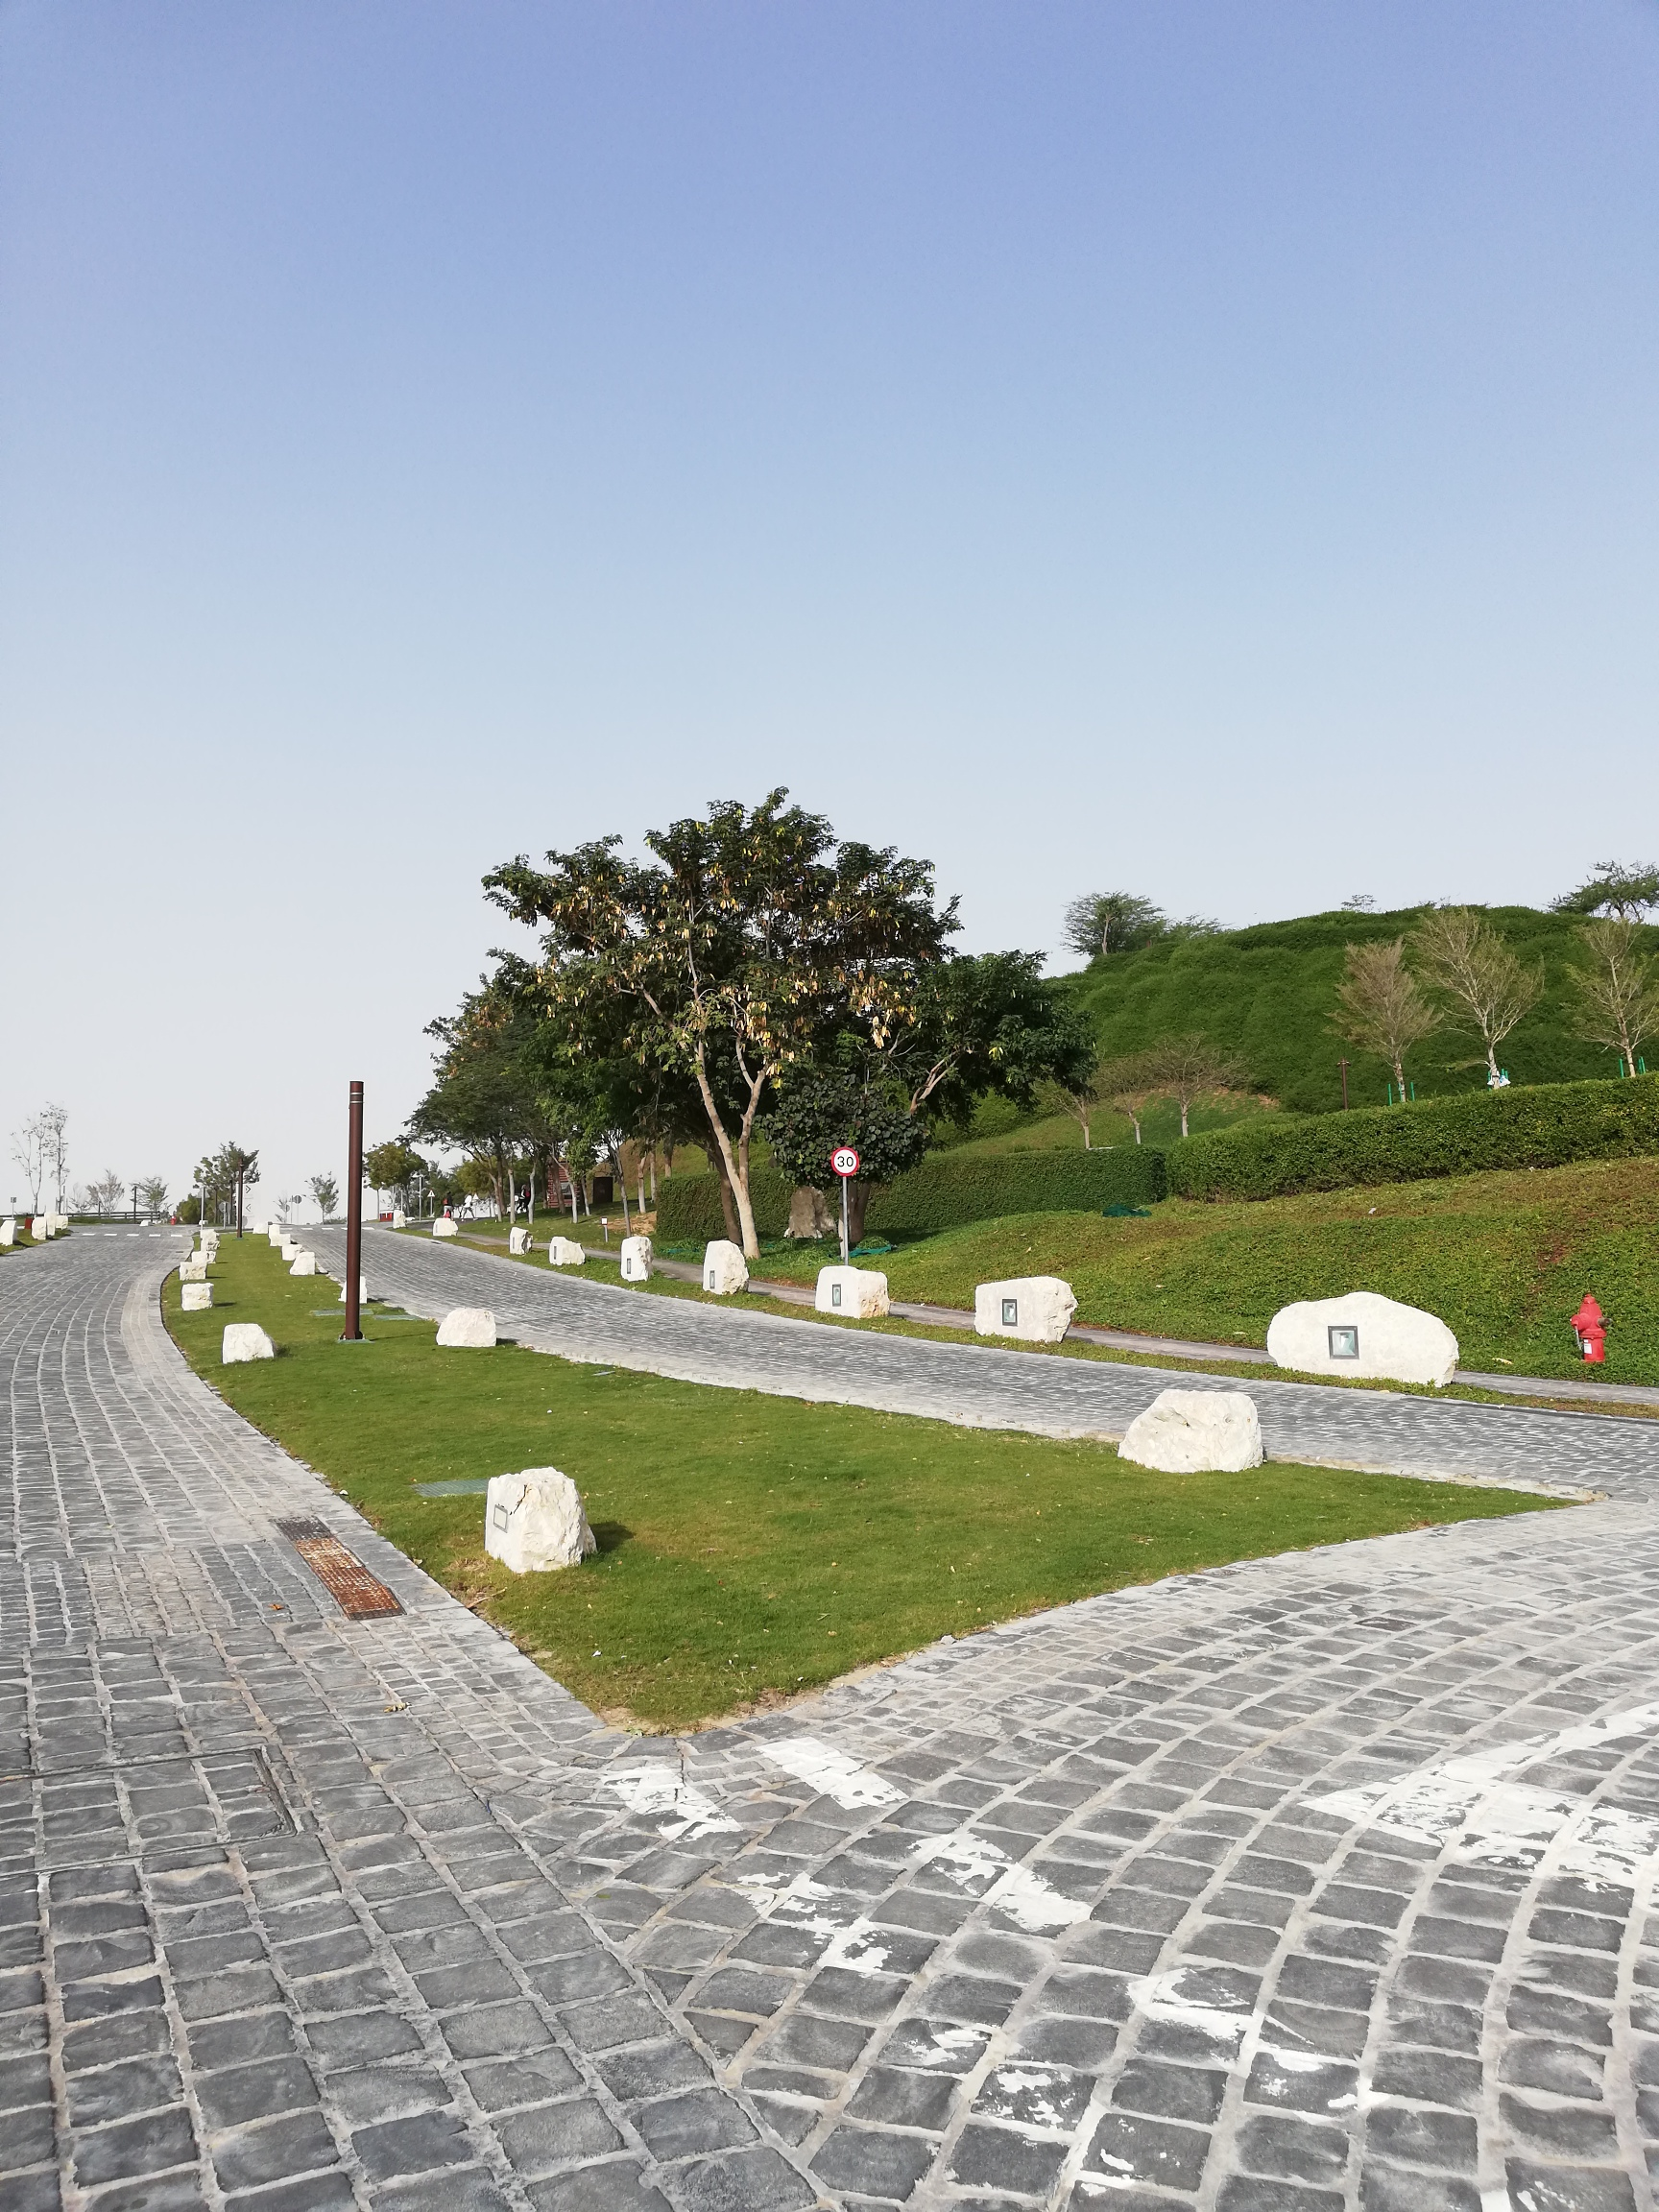 Road leading upto Katara exercise trail